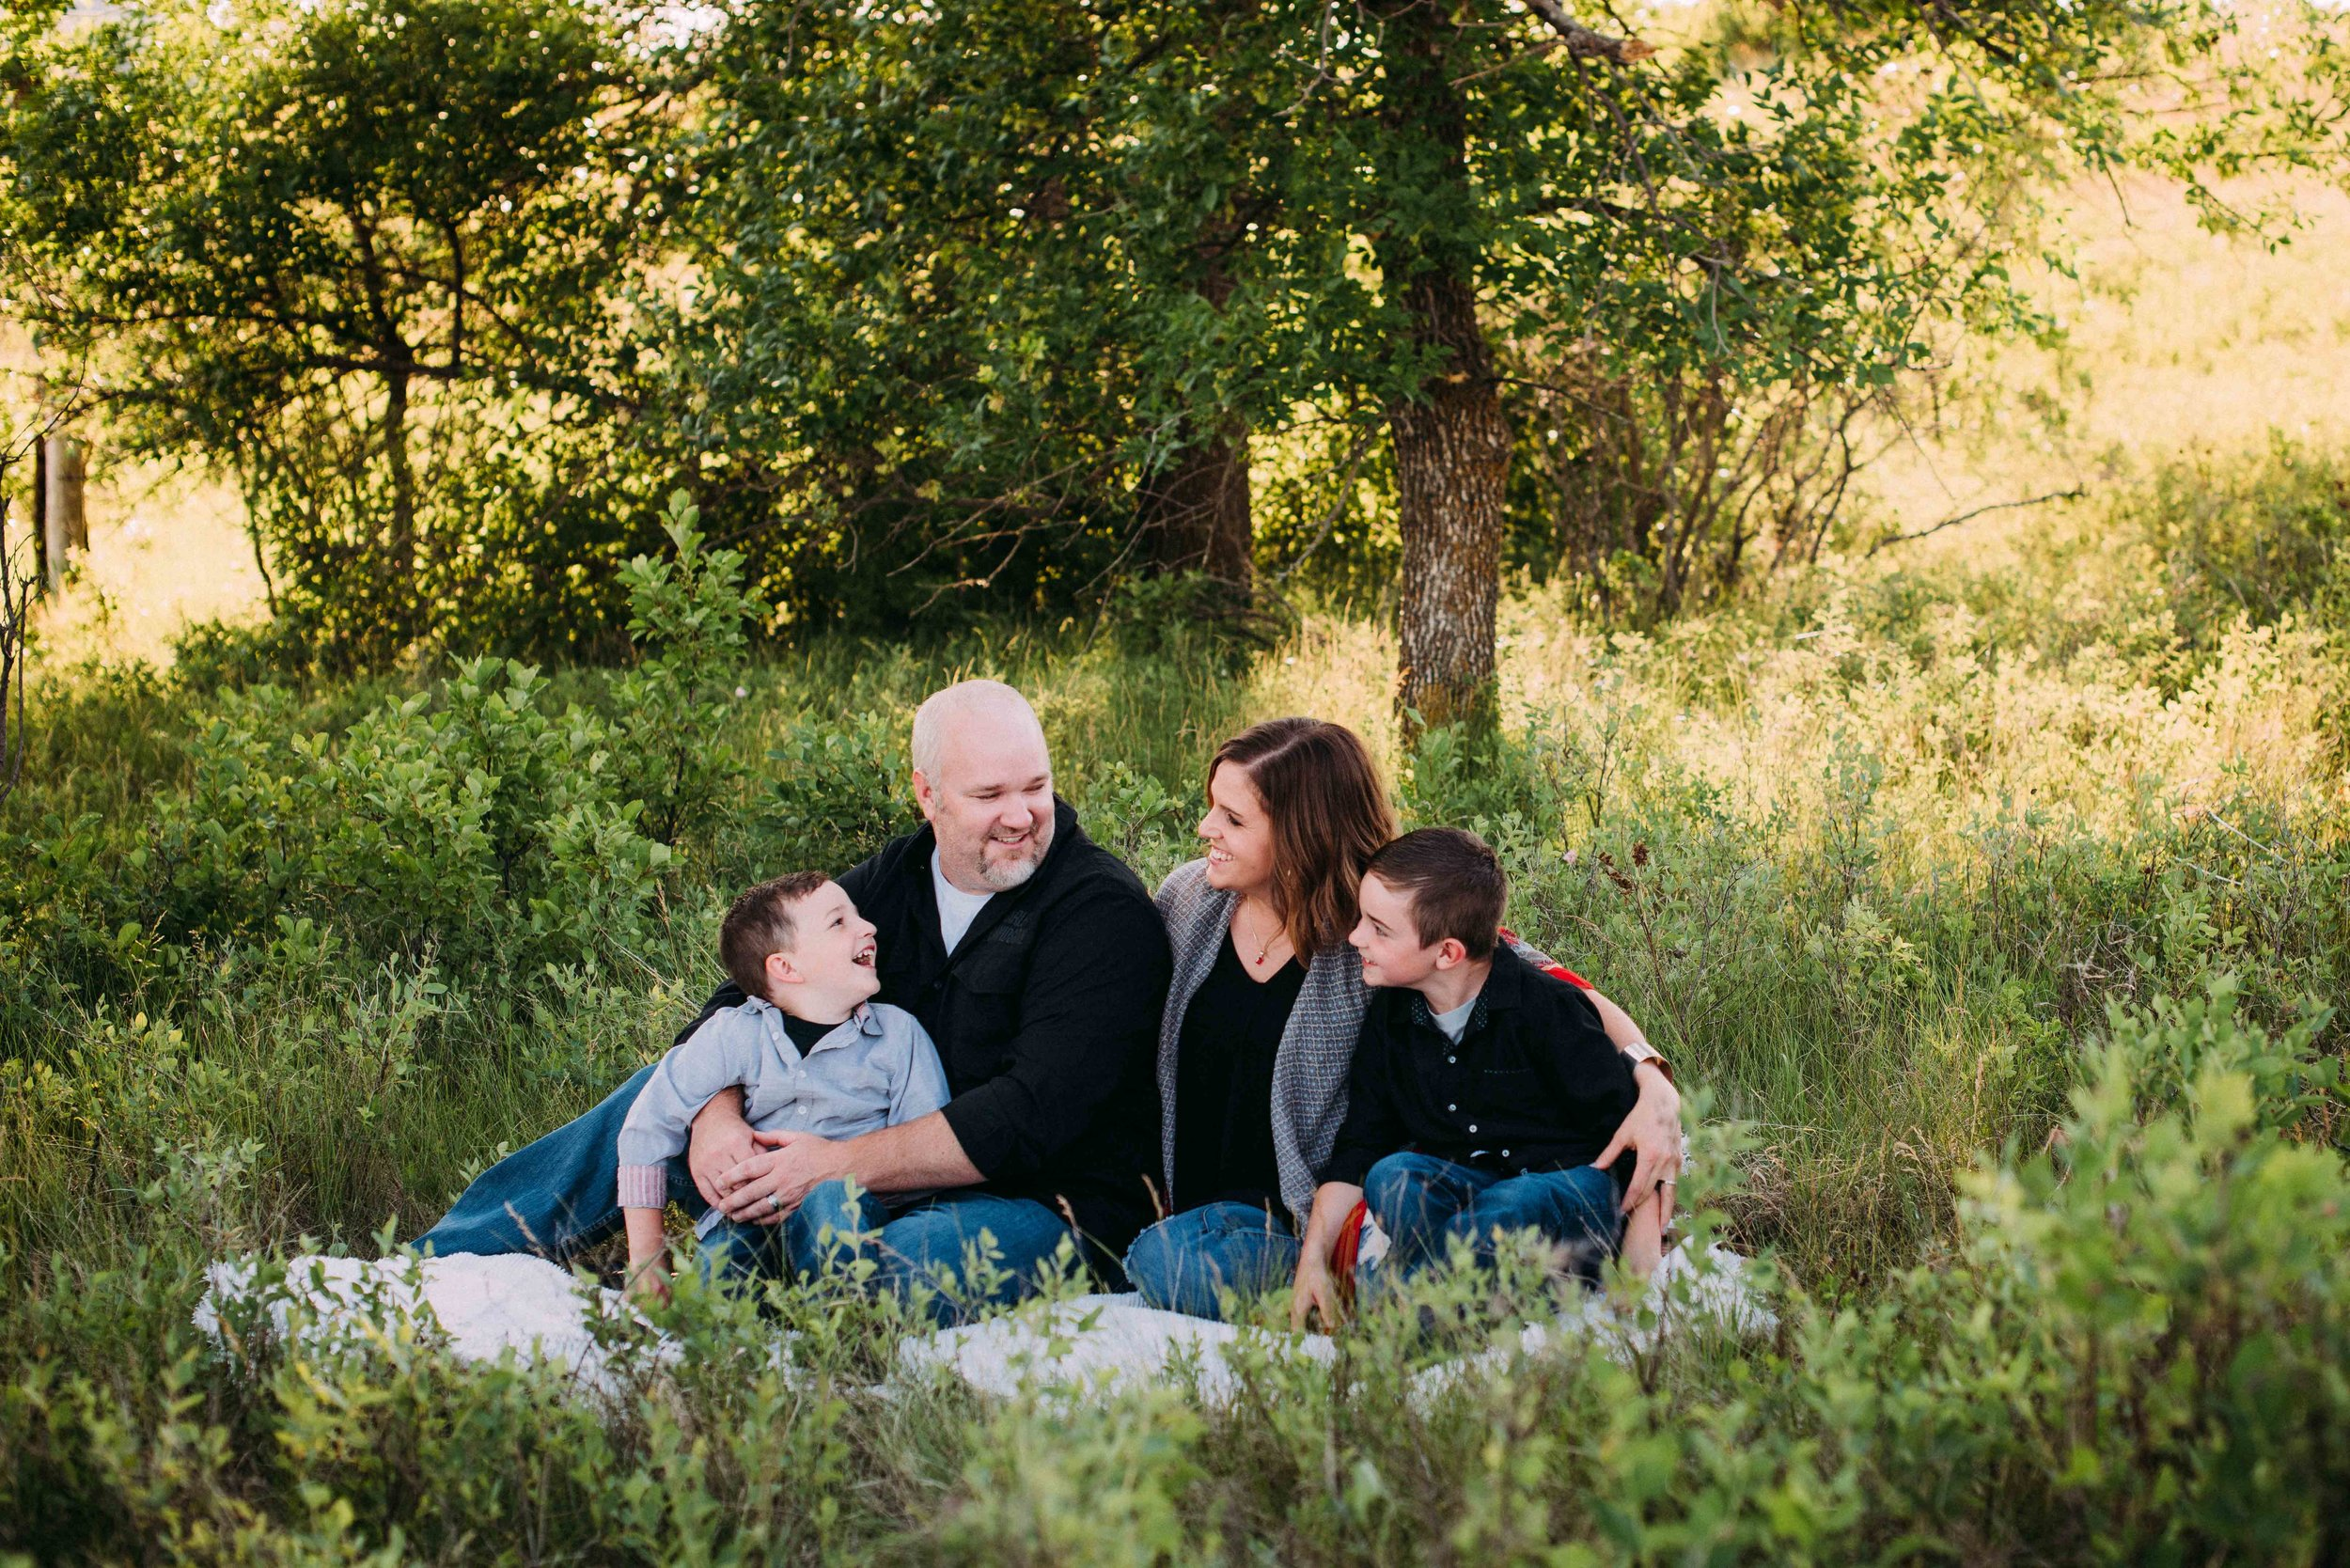 WEB - debi williams debirae photography photos photo families family couple enagements maternity baby newborn portraits portrait colorado wyoming North dakota-4383.jpg